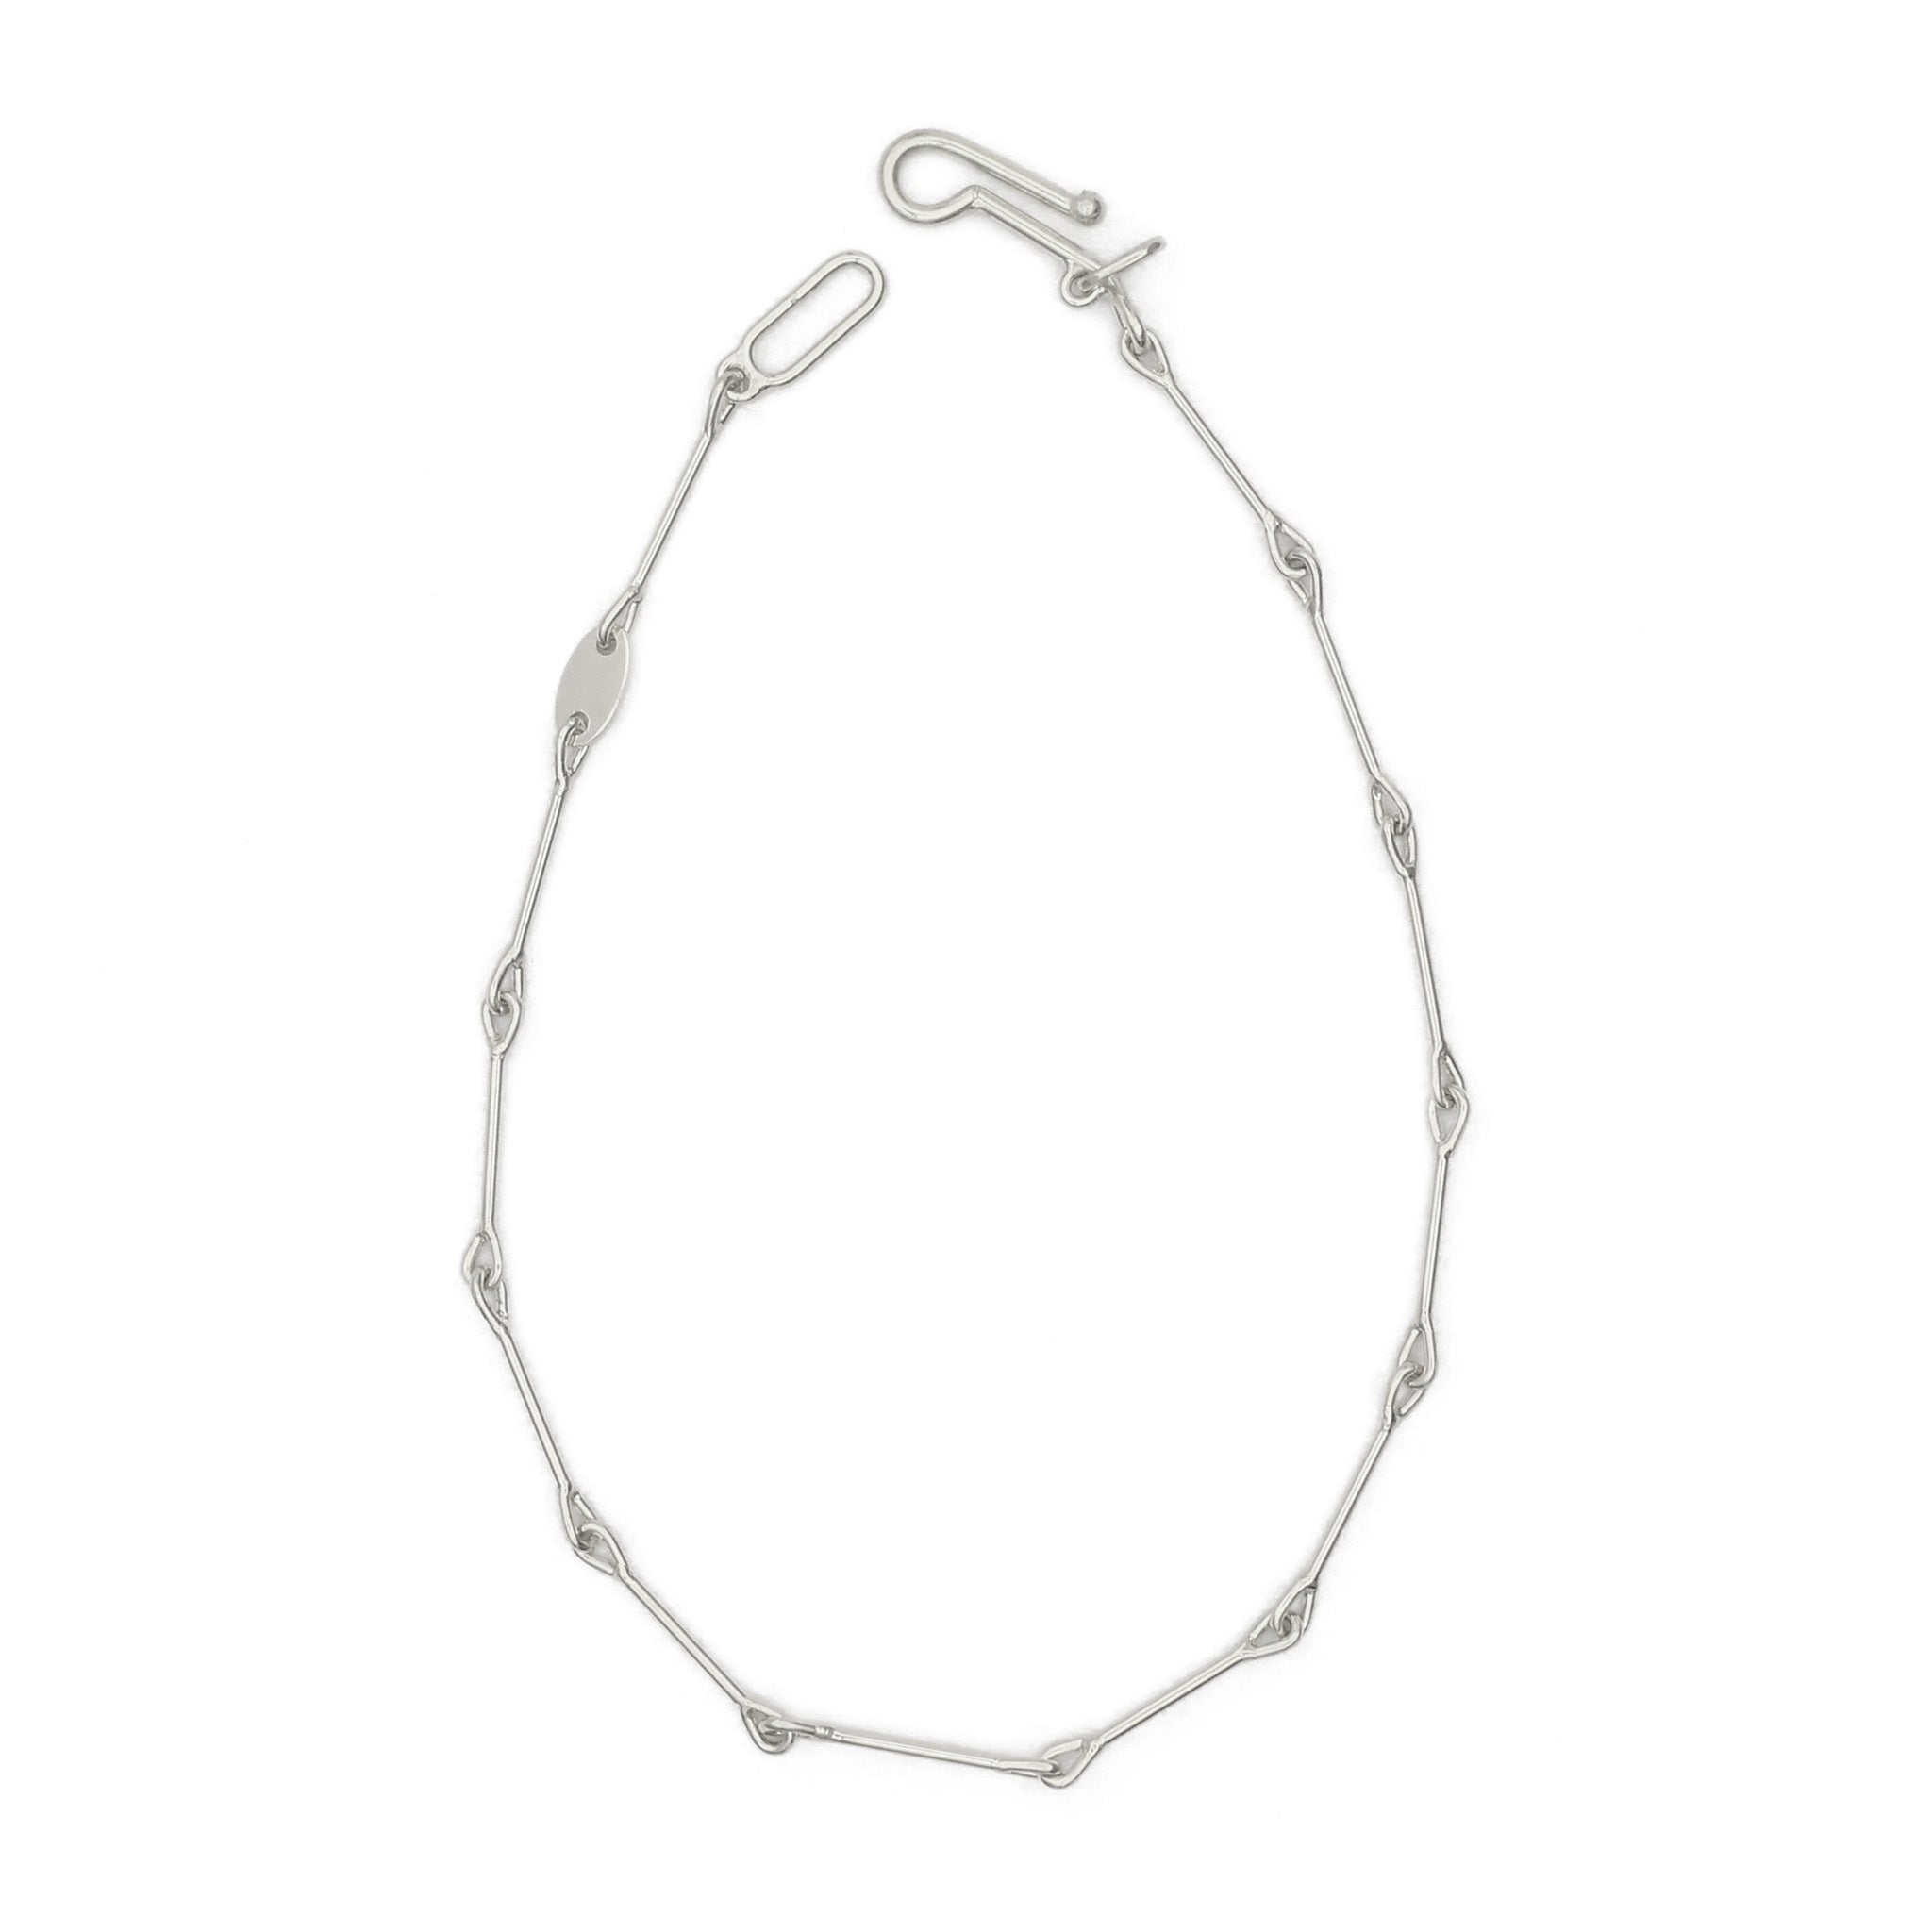 Needle Eye Chain Bracelet - Light Weight